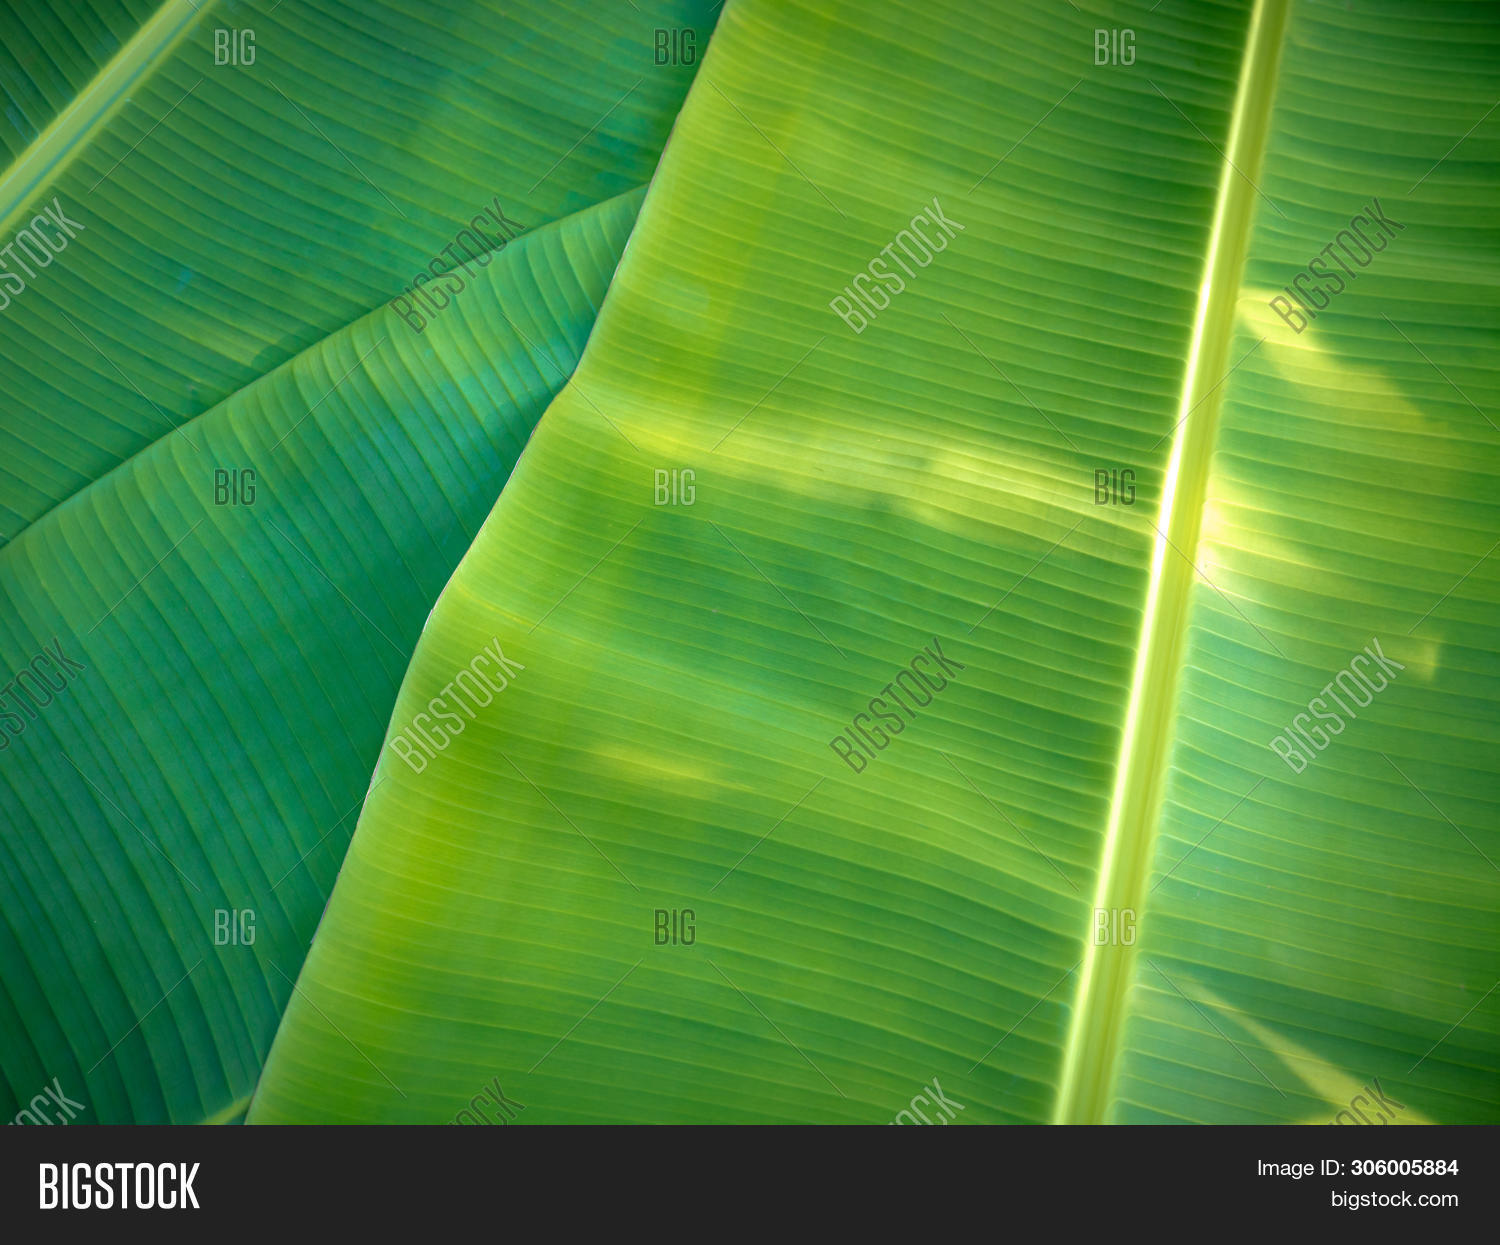 Tropical Banana Leaves Image Photo Free Trial Bigstock Diy your dining table,home,bedroom,bookshelves,cabinets by these tropical leaves,create an authentic tropical. bigstock